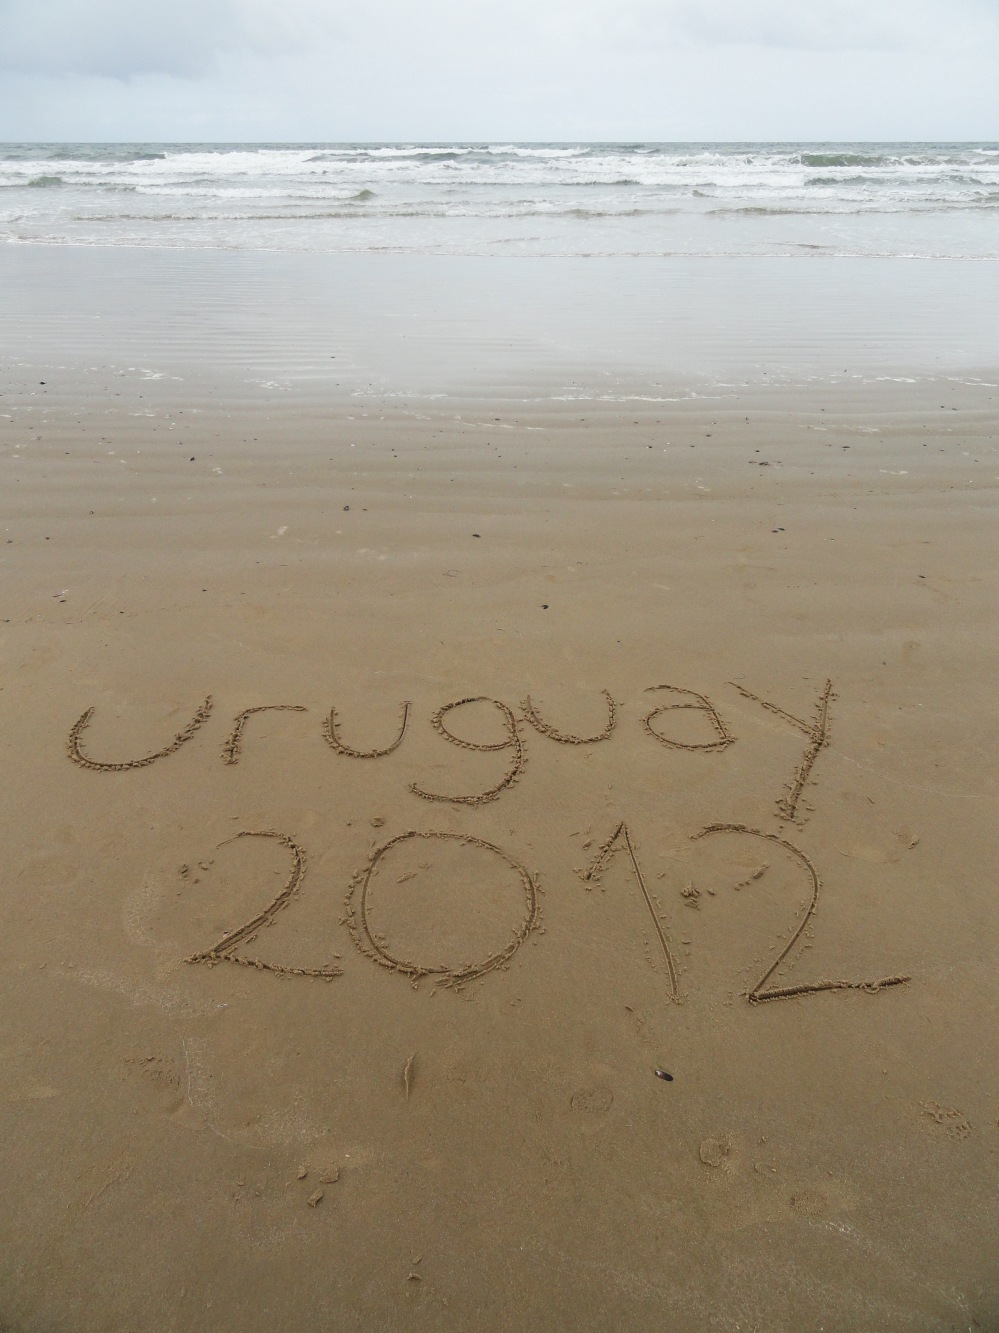 Beaches in Uruguay